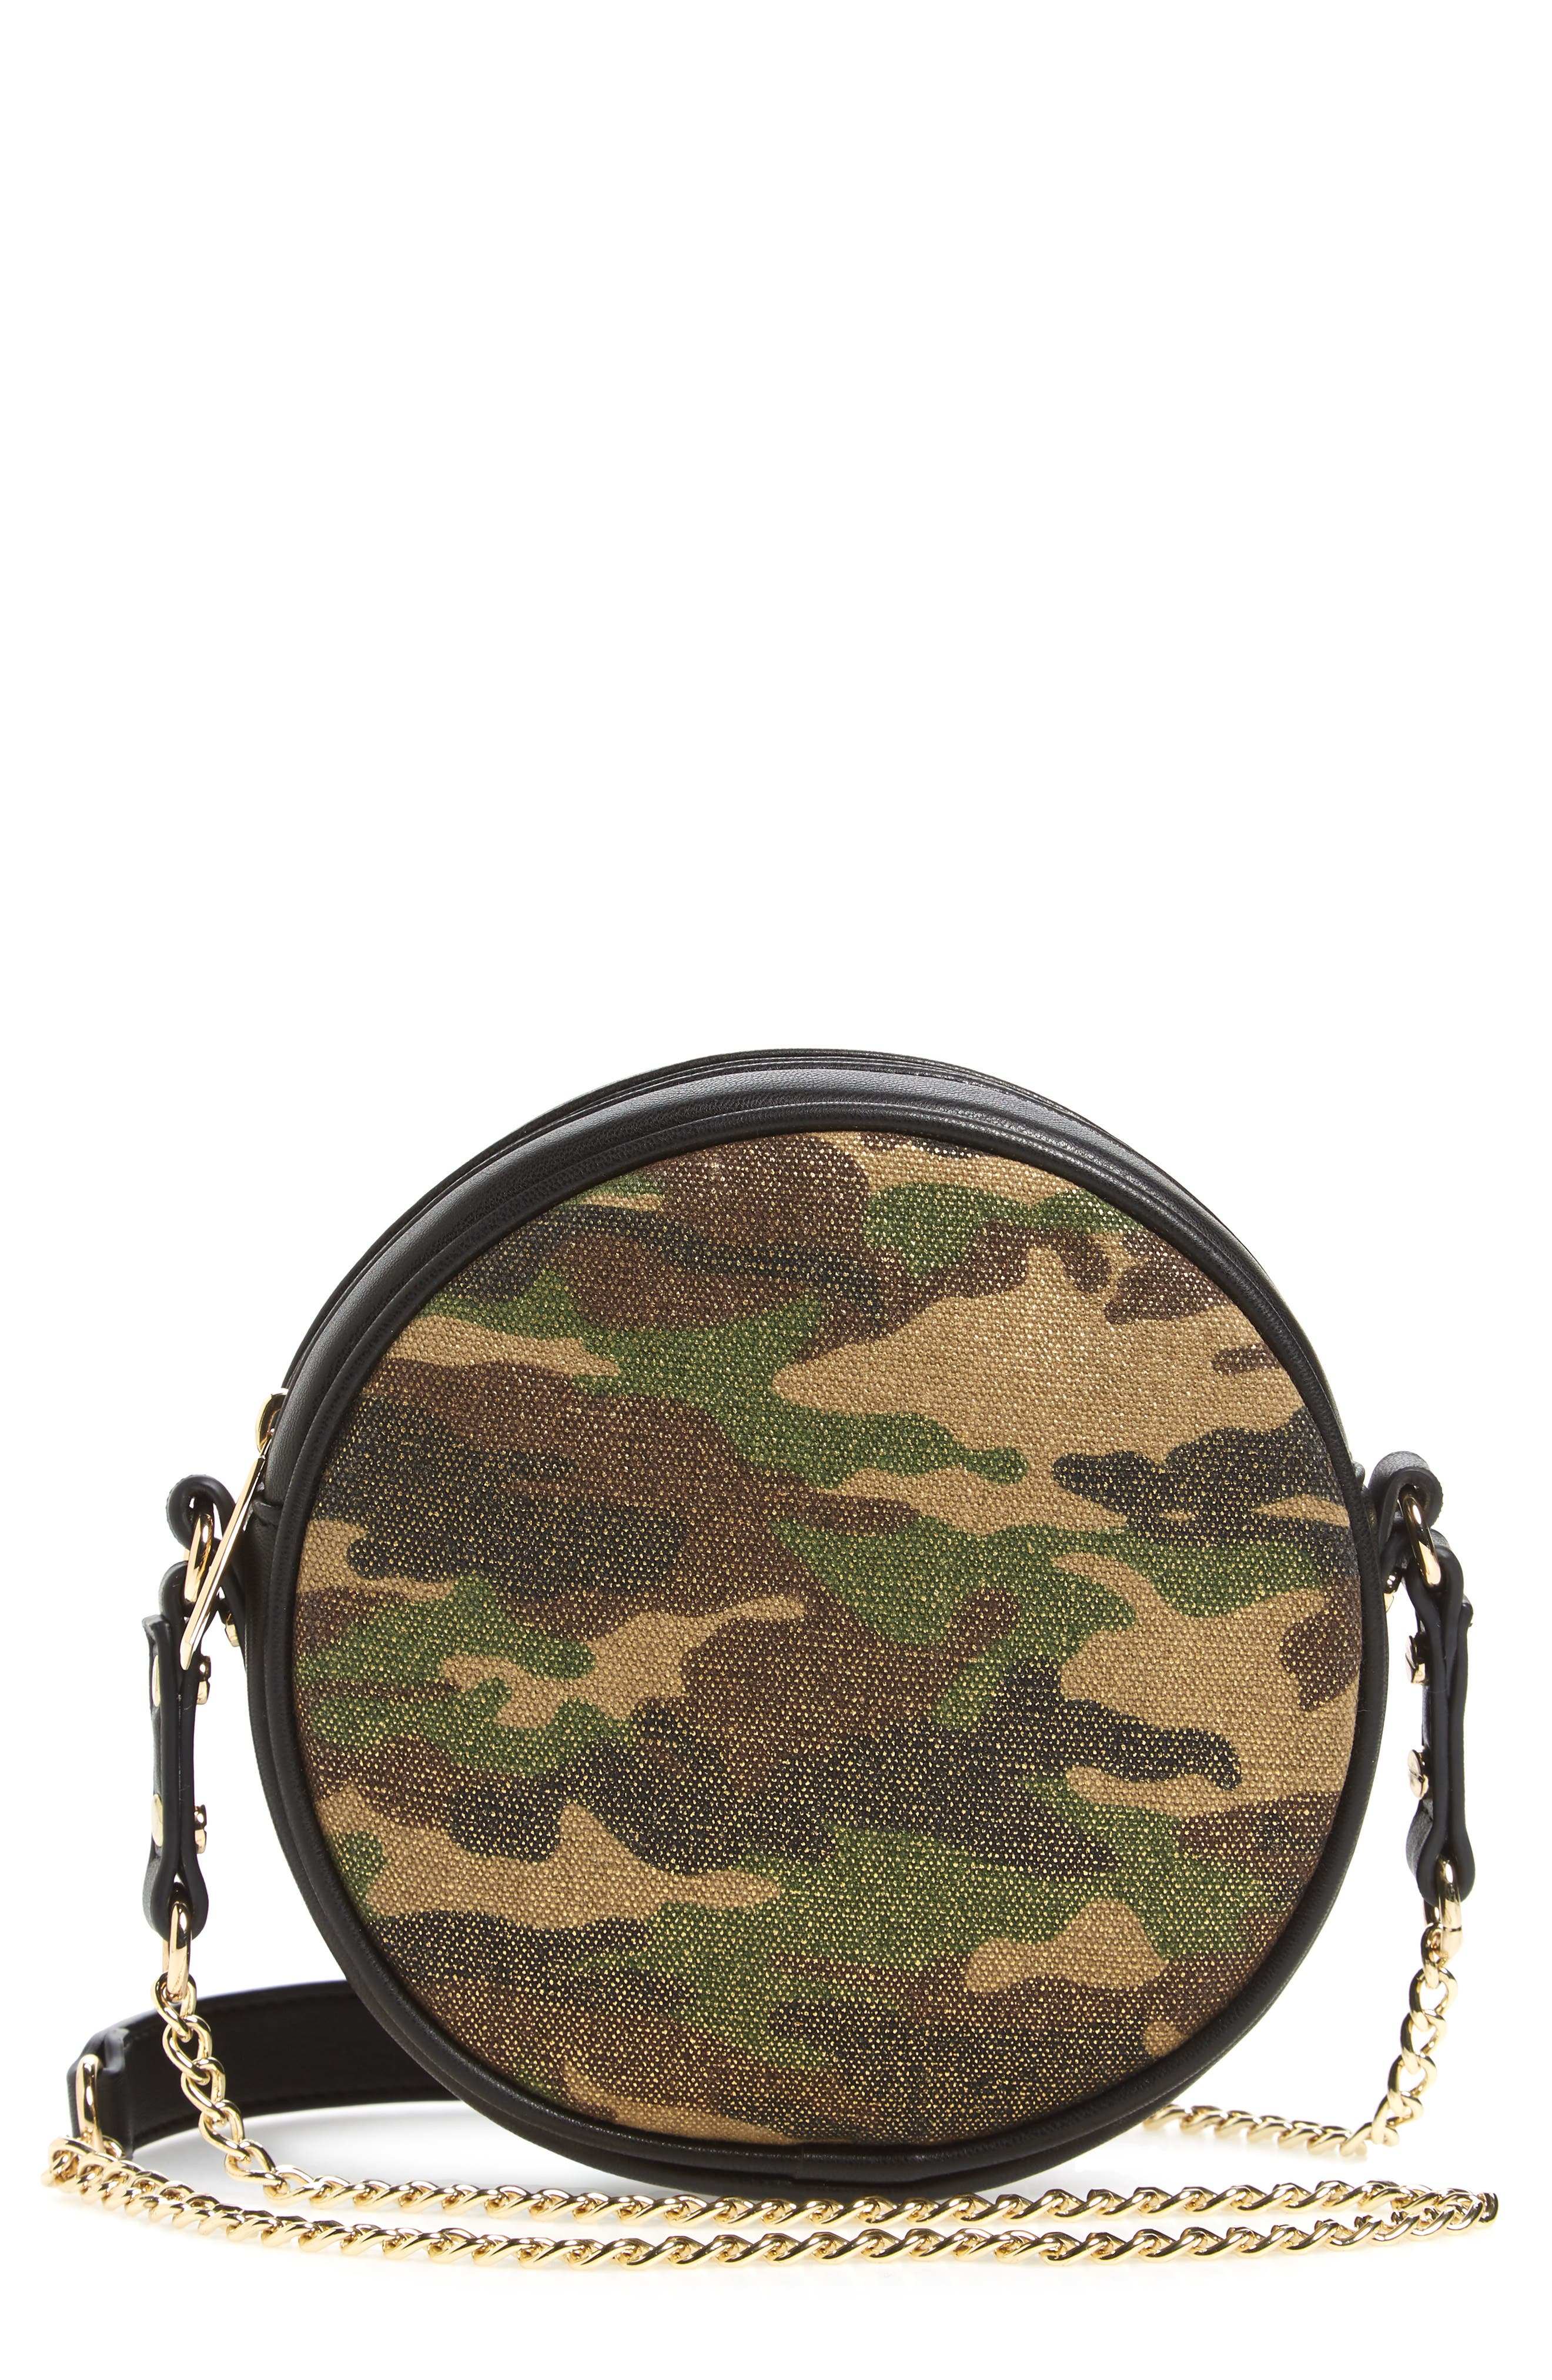 Mali + Lili Camouflage Vegan Leather Canteen Crossbody Bag,                             Main thumbnail 1, color,                             Camouflage